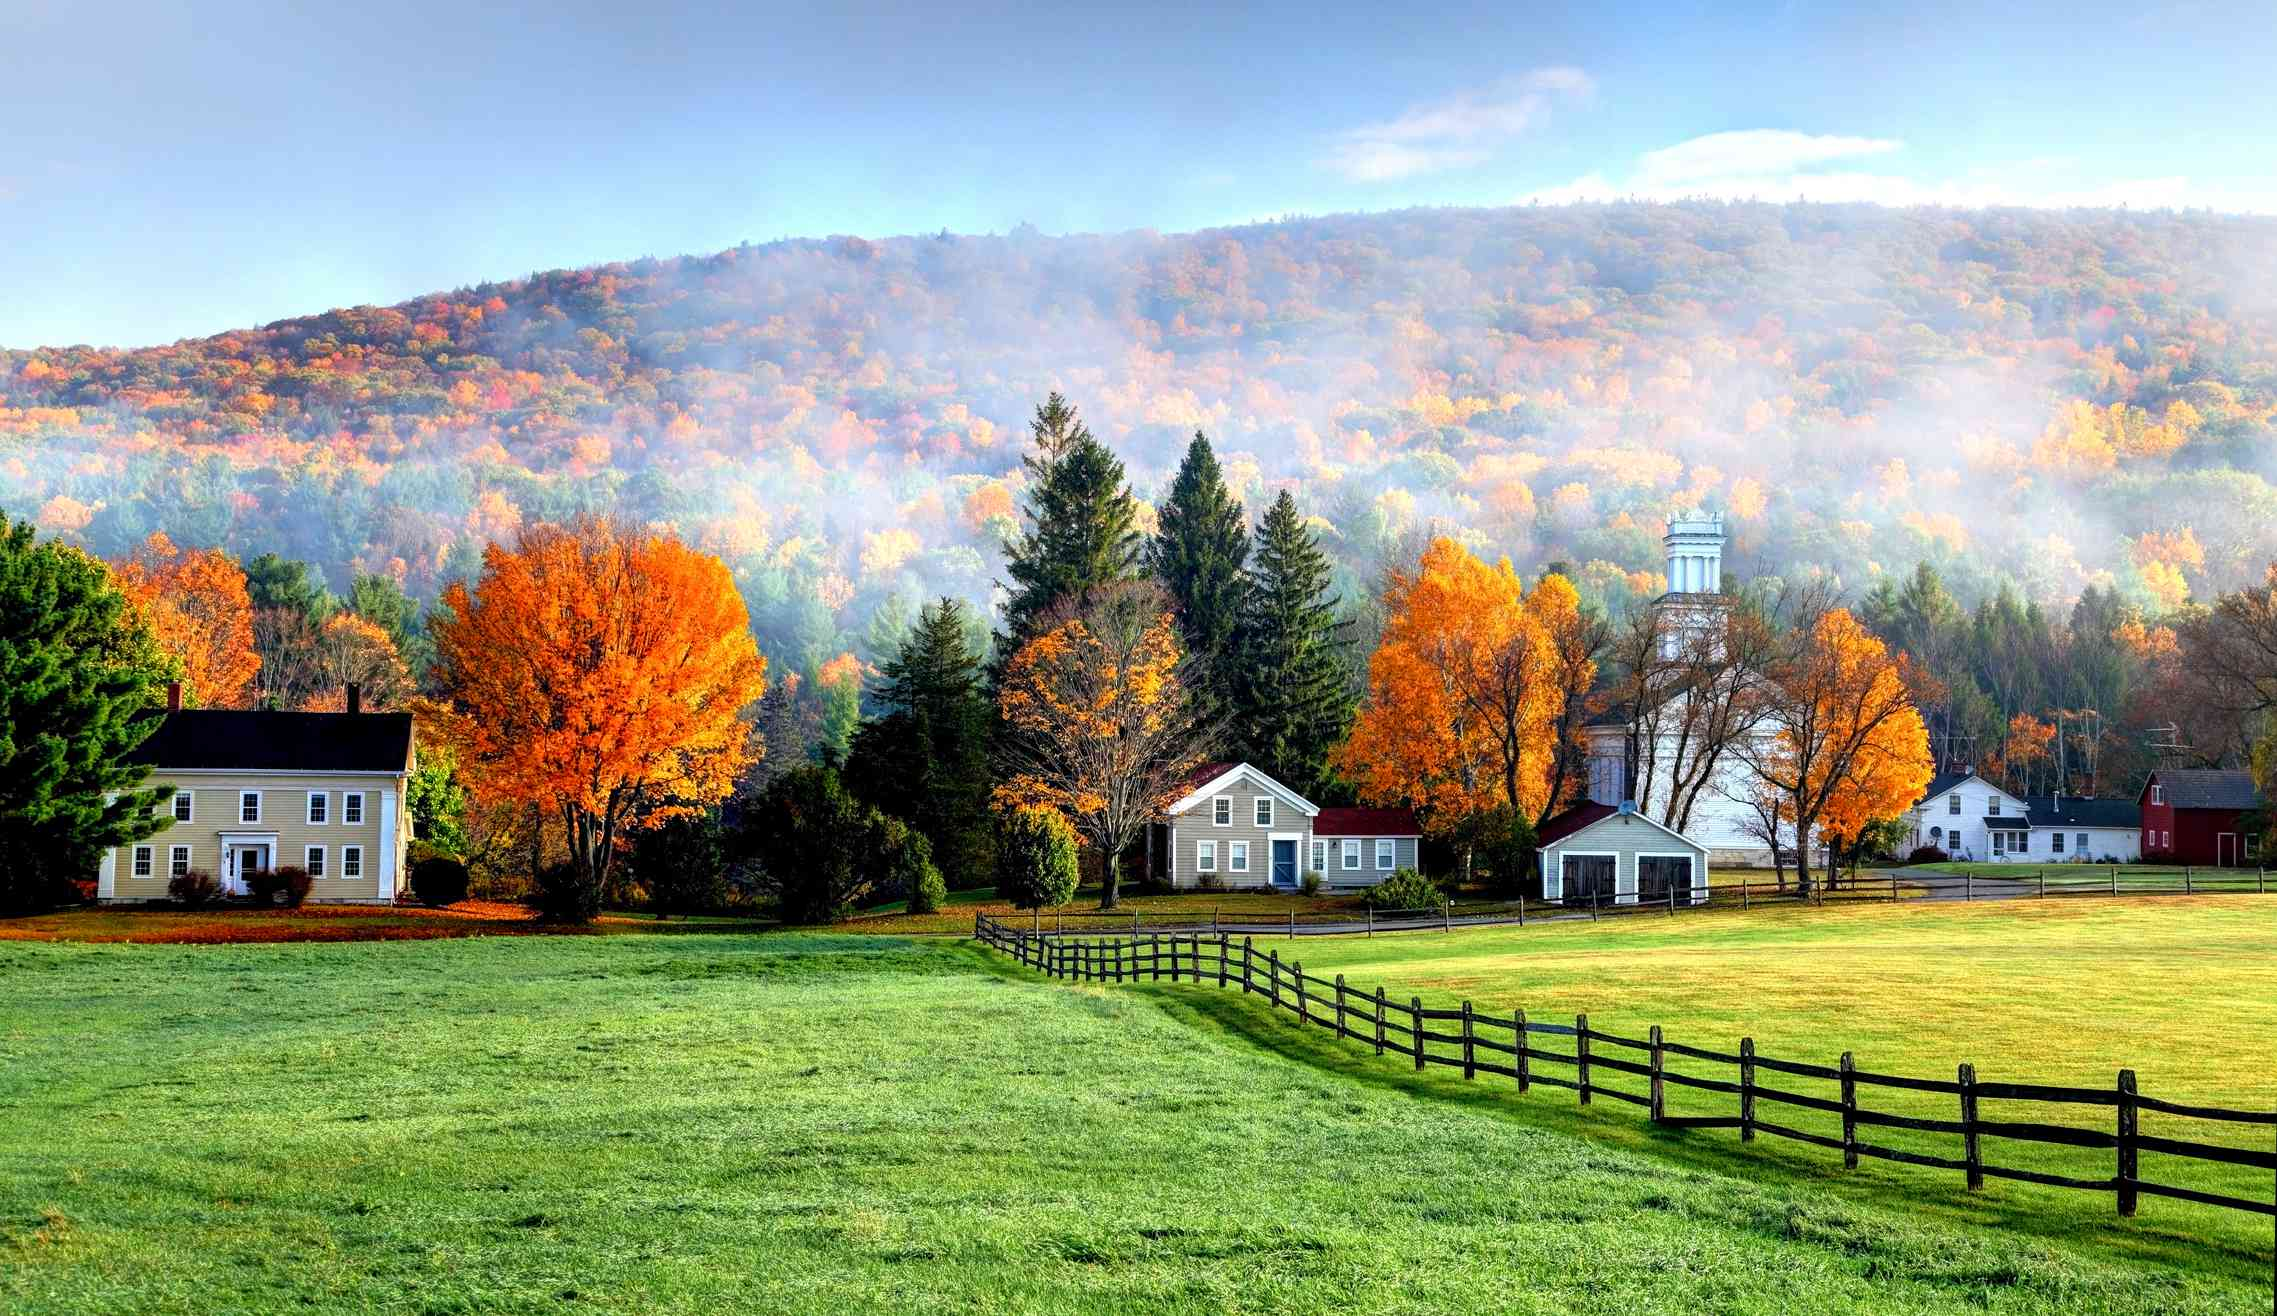 Autumn mist in the village of Tyringham in the Berkshires